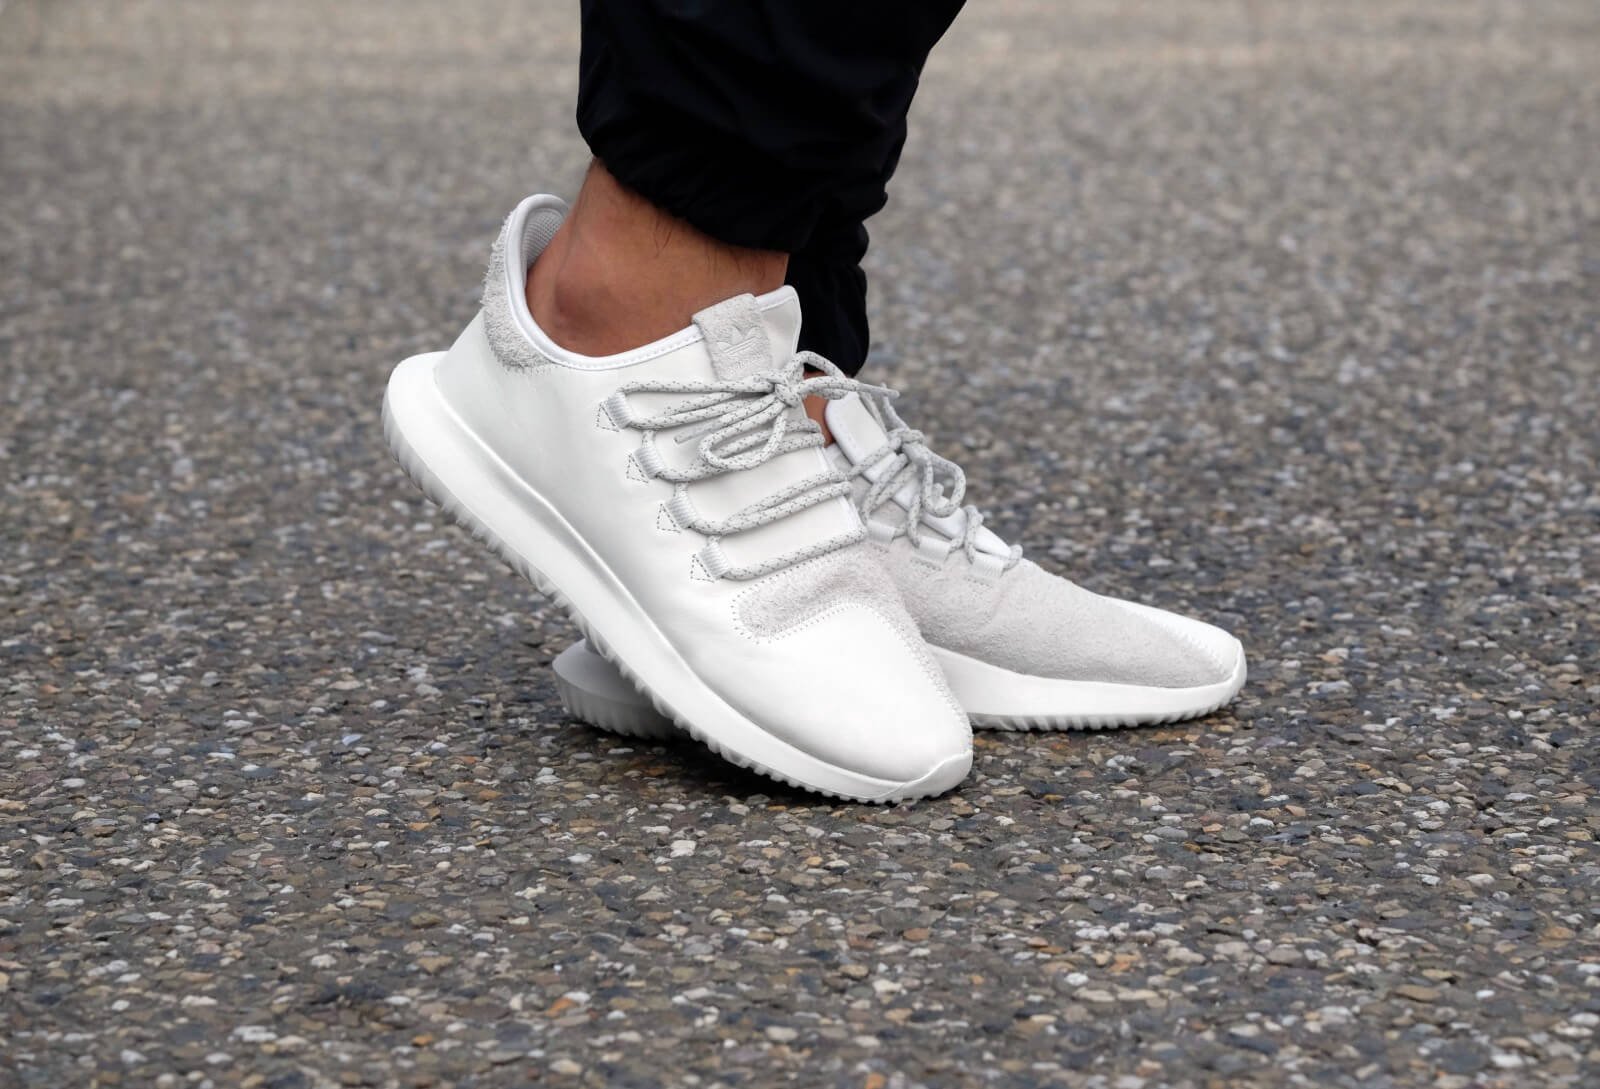 Adidas Tubular Shadow - Crystal White / Footwear White